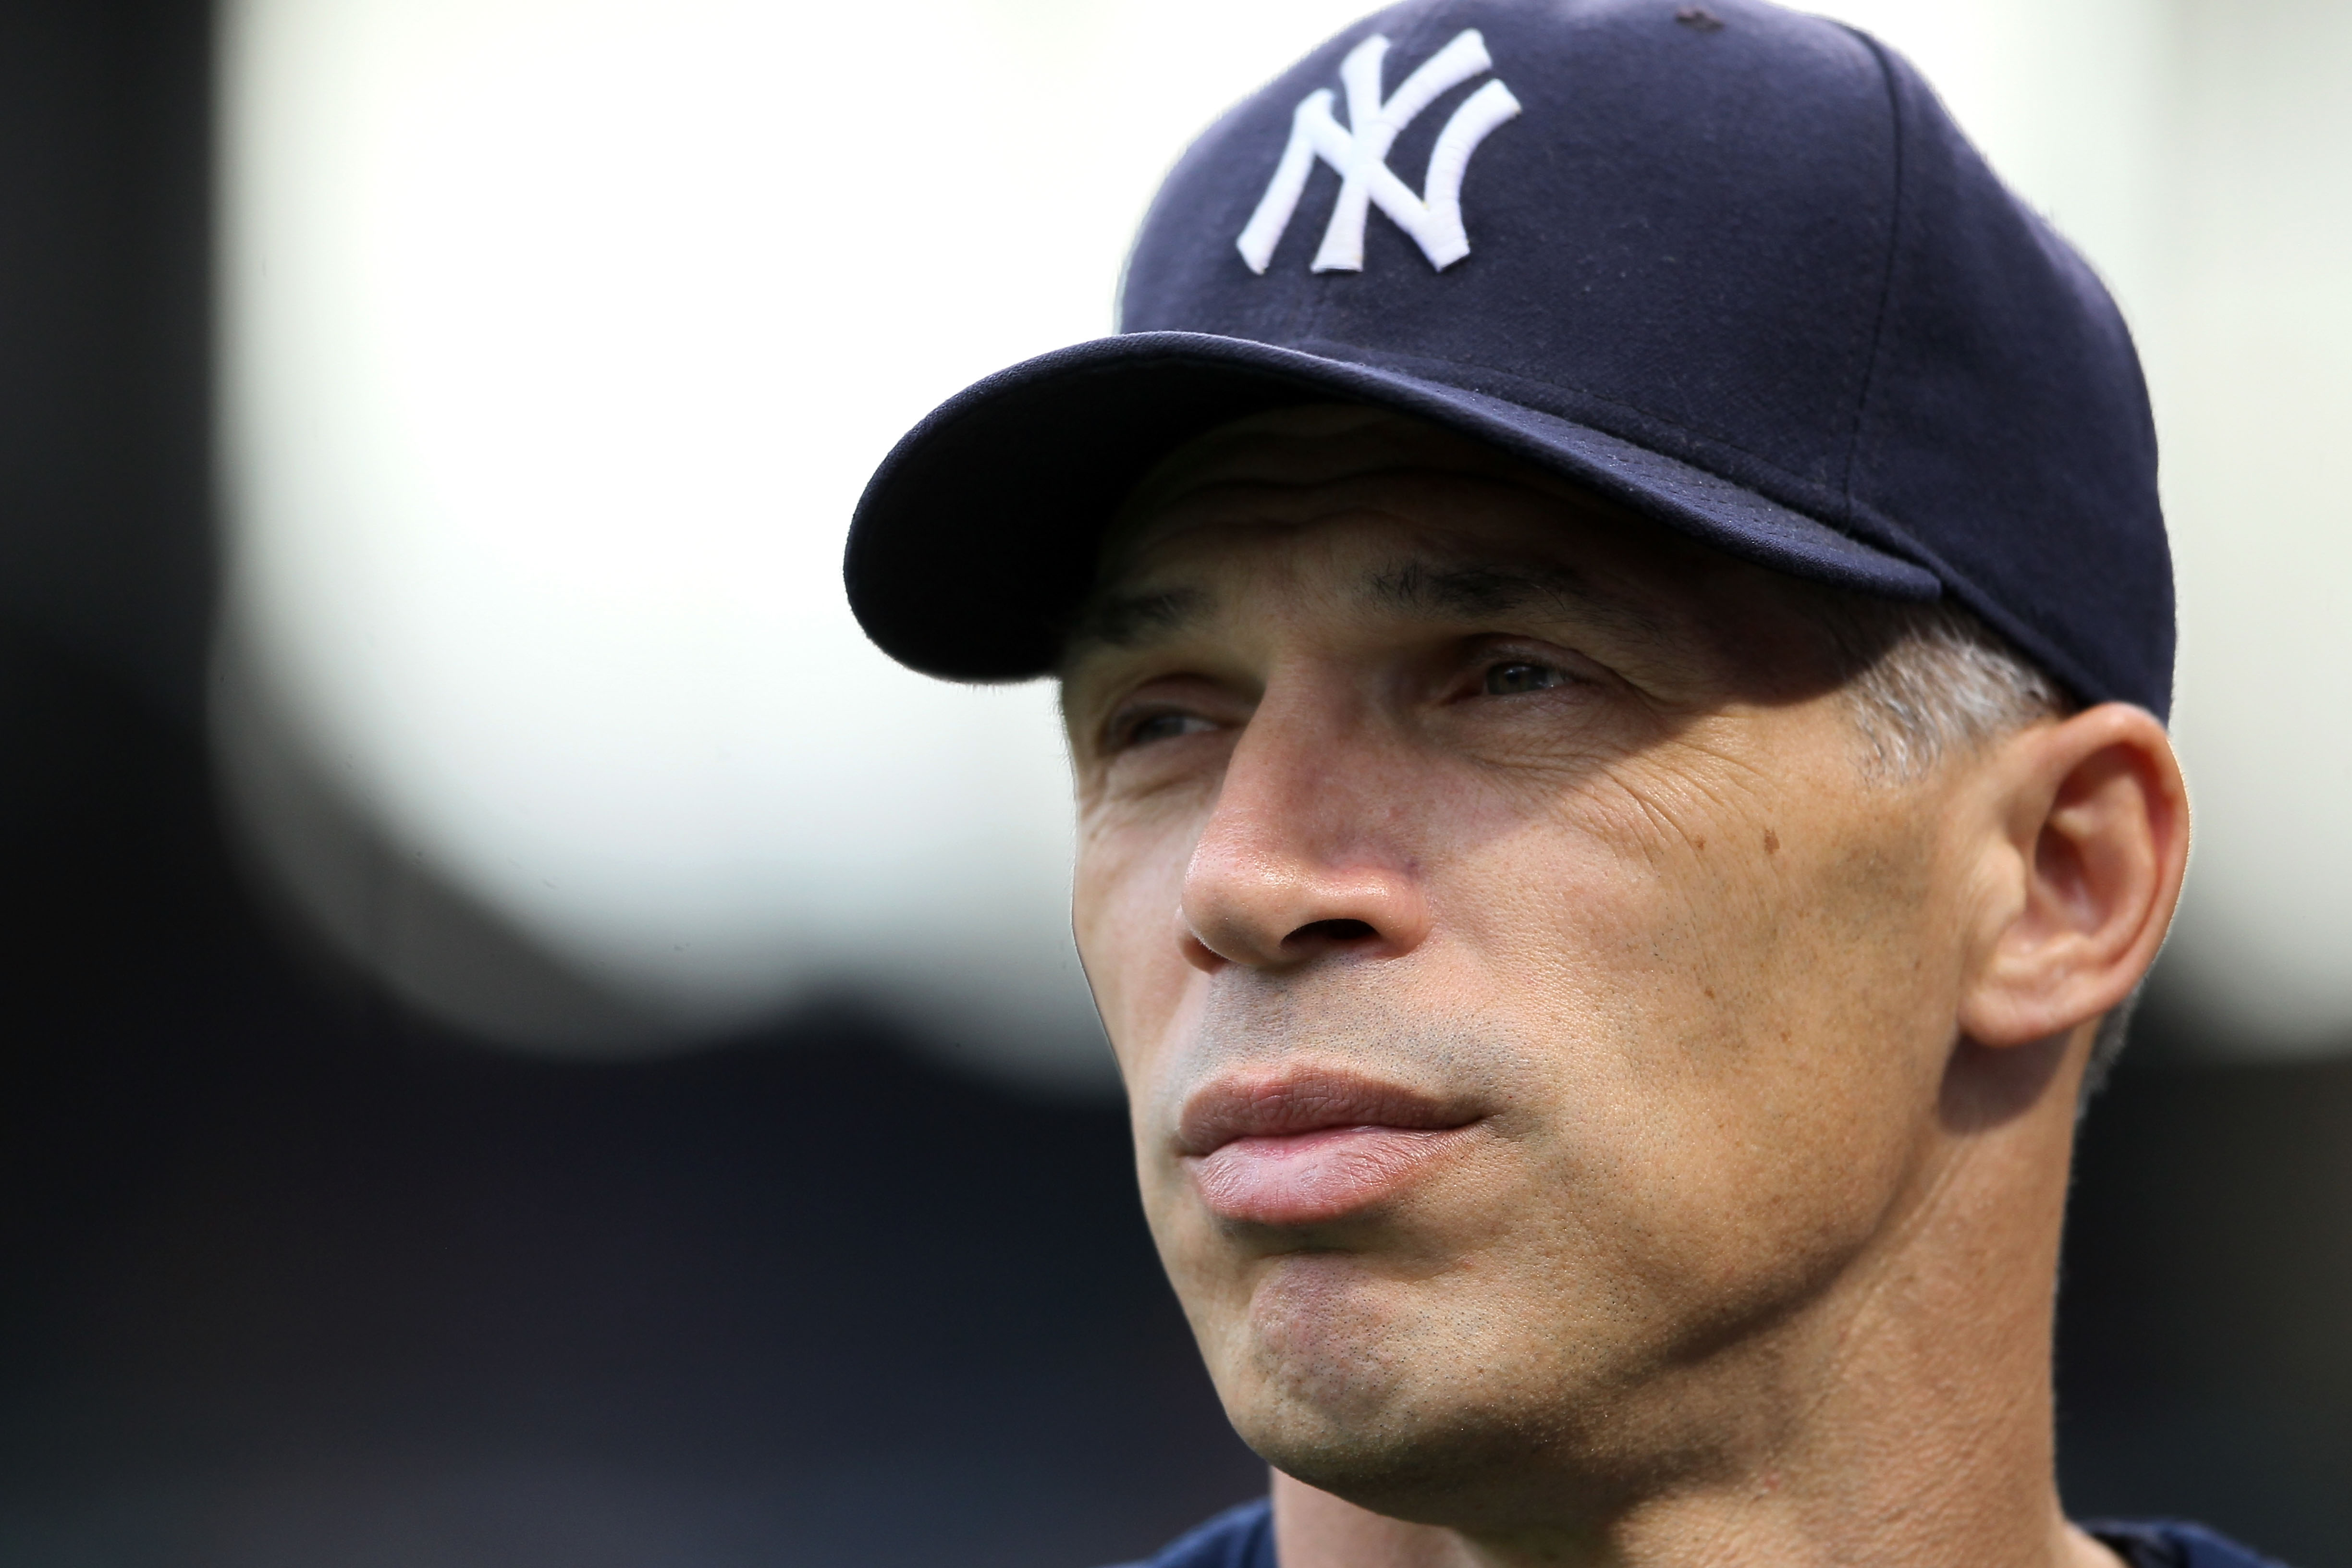 ARLINGTON, TX - OCTOBER 22:  Manager Joe Girardi of the New York Yankees looks on during batting practice prior to Game Six of the ALCS against the Texas Rangers during the 2010 MLB Playoffs at Rangers Ballpark in Arlington on October 22, 2010 in Arlingto